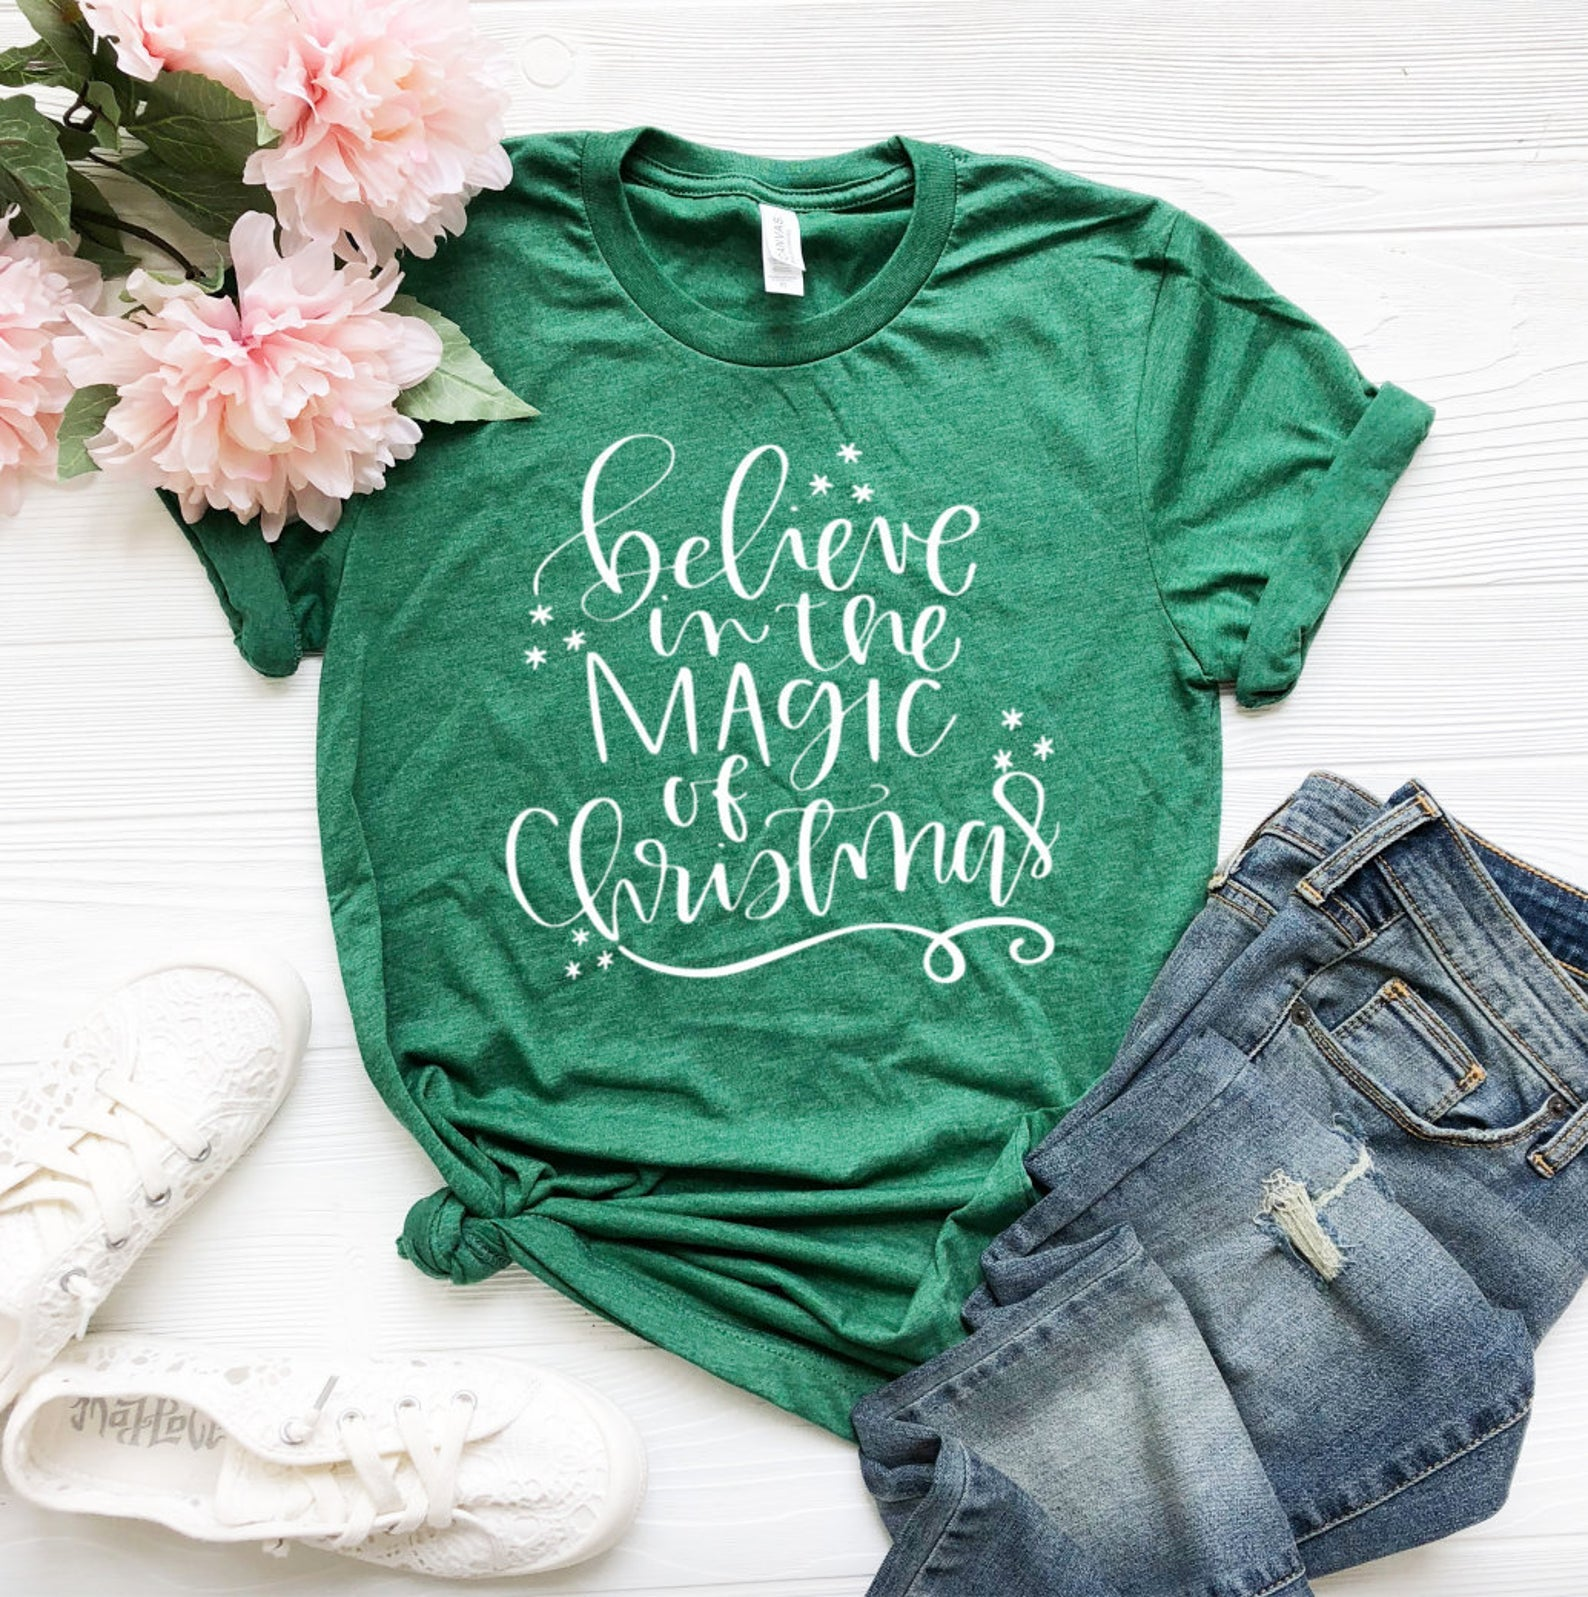 Christmas Magic T-shirt - Christmas T-Shirts - Cute Christmas T-Shirt - Custom Green Shirts - Green Shirts - Xmas Shirts